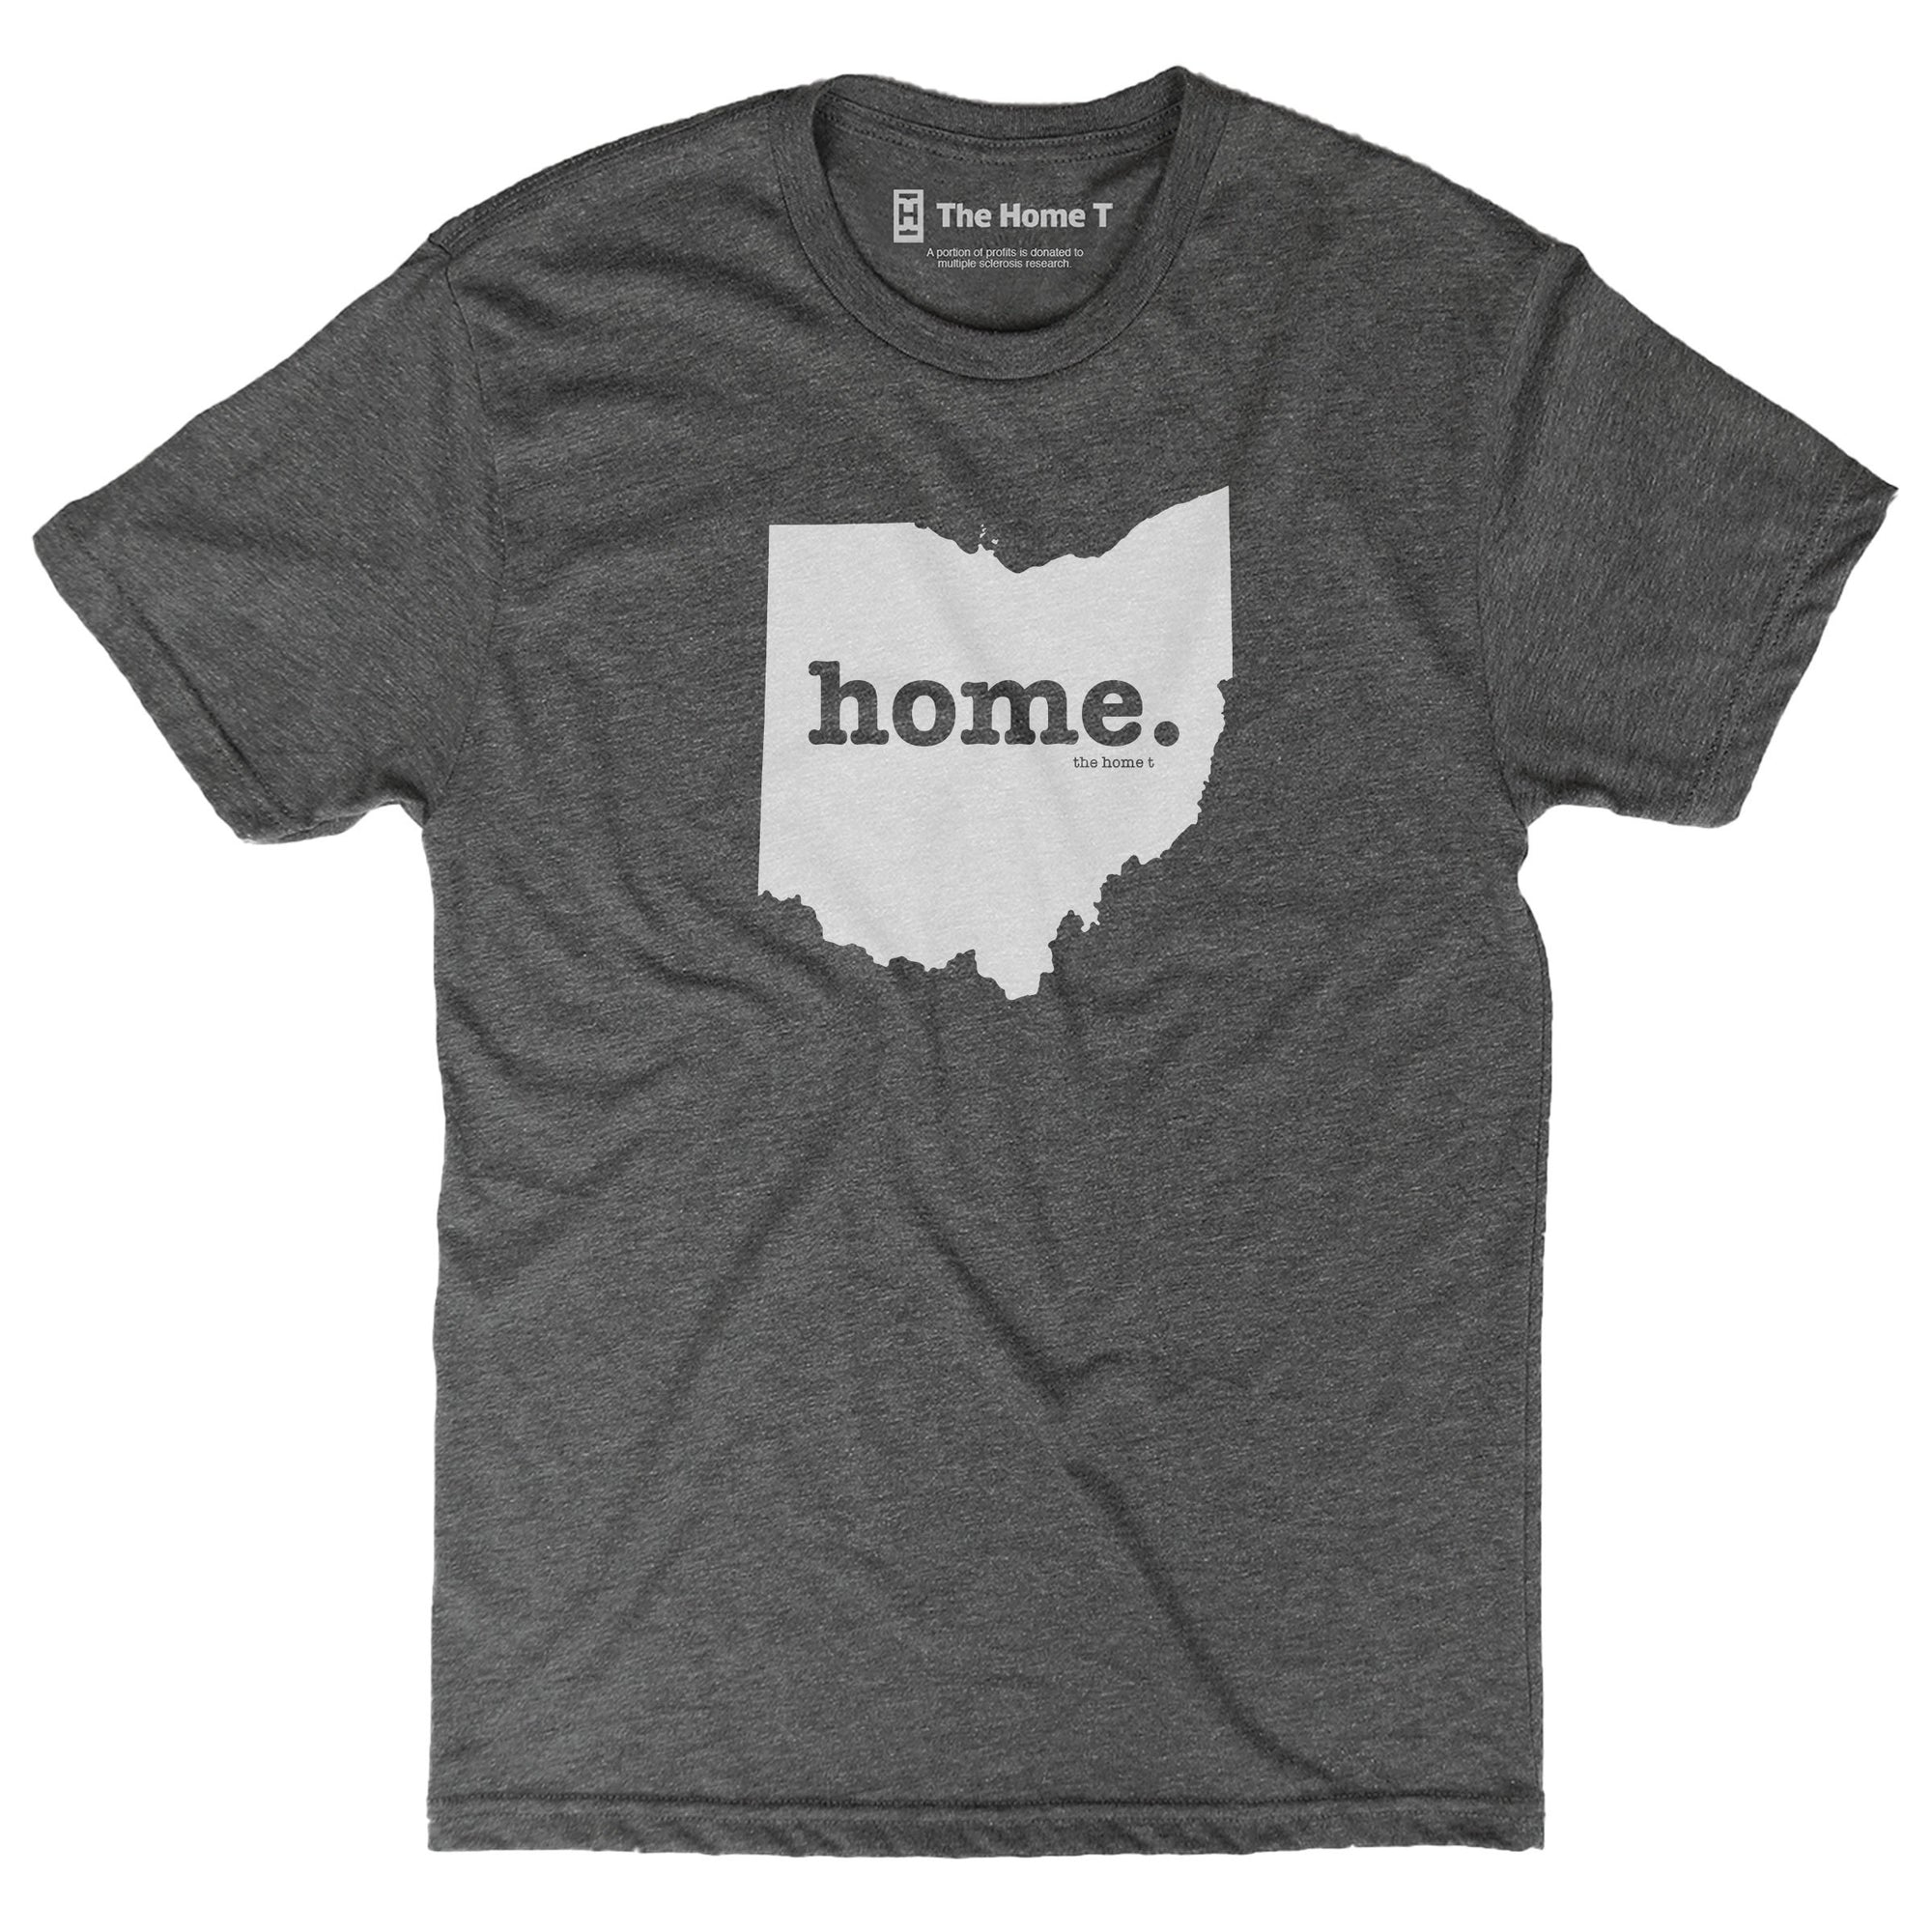 Ohio Home T Original Crew The Home T XXL Grey